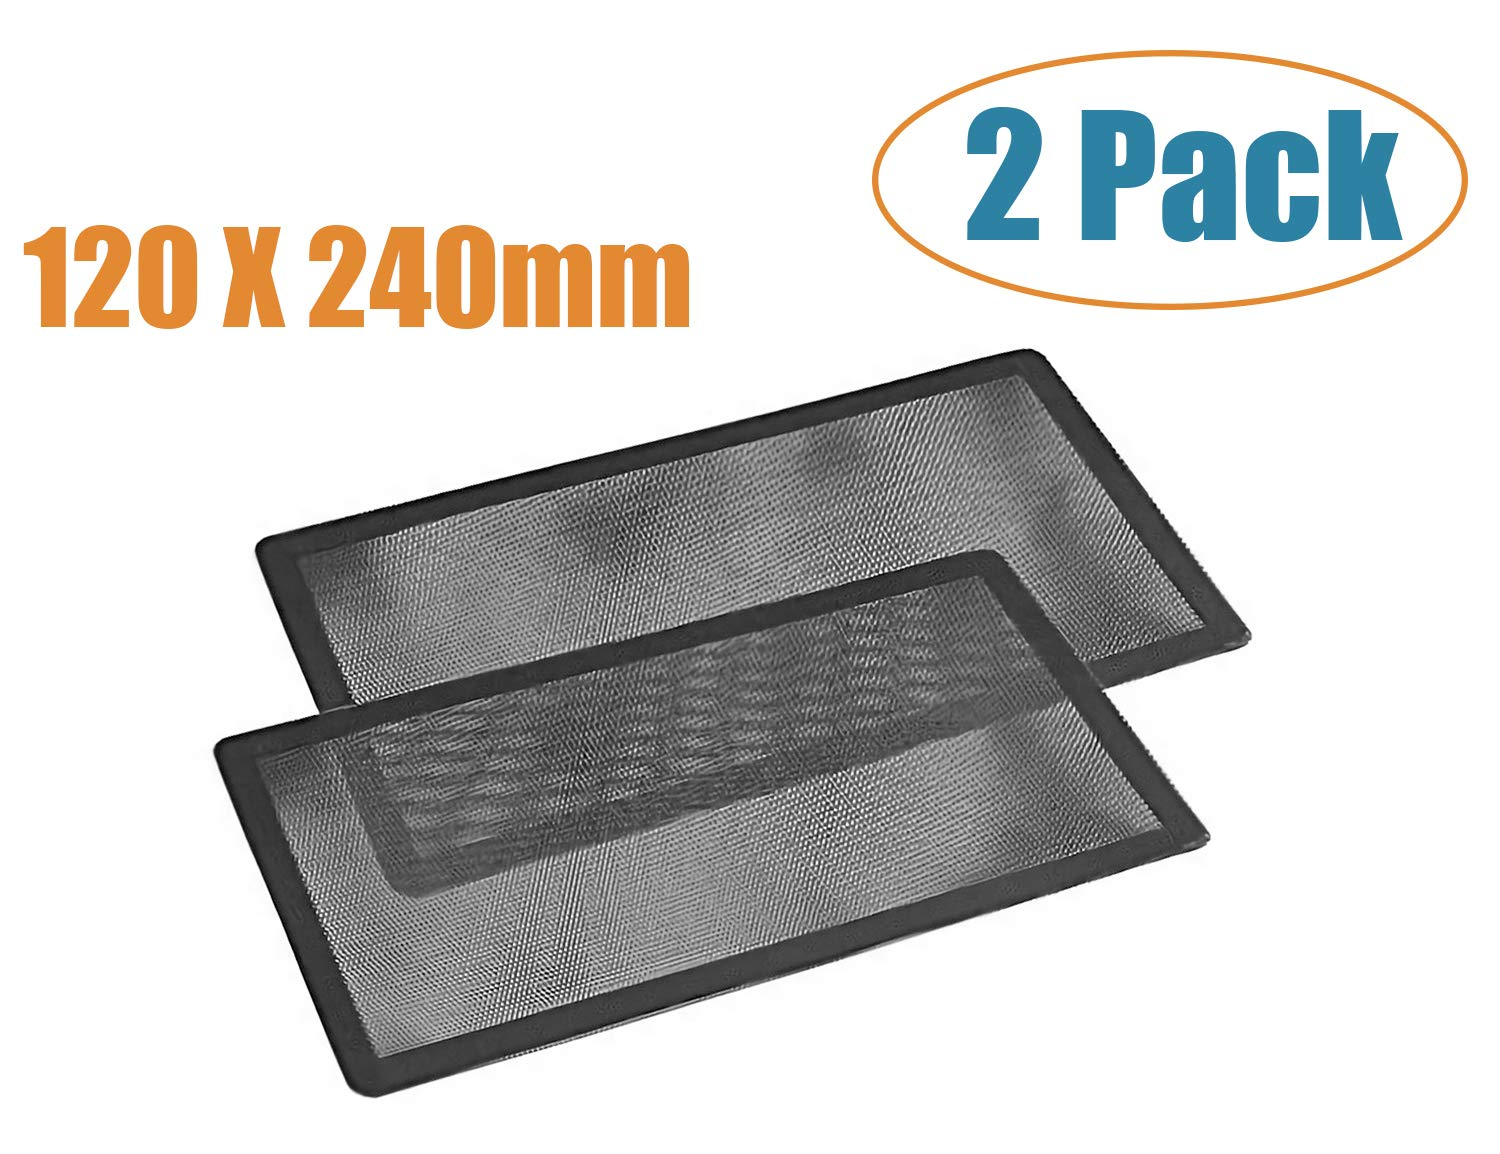 120mm x 2 Magnetic Frame Dust Filter, Computer Dust Filter and PC Computer Case Fan Dust Filter Screen Dustproof Case Cover with Magnet, Ultra Fine PVC Mesh Set of 2 by SSIOIZZ